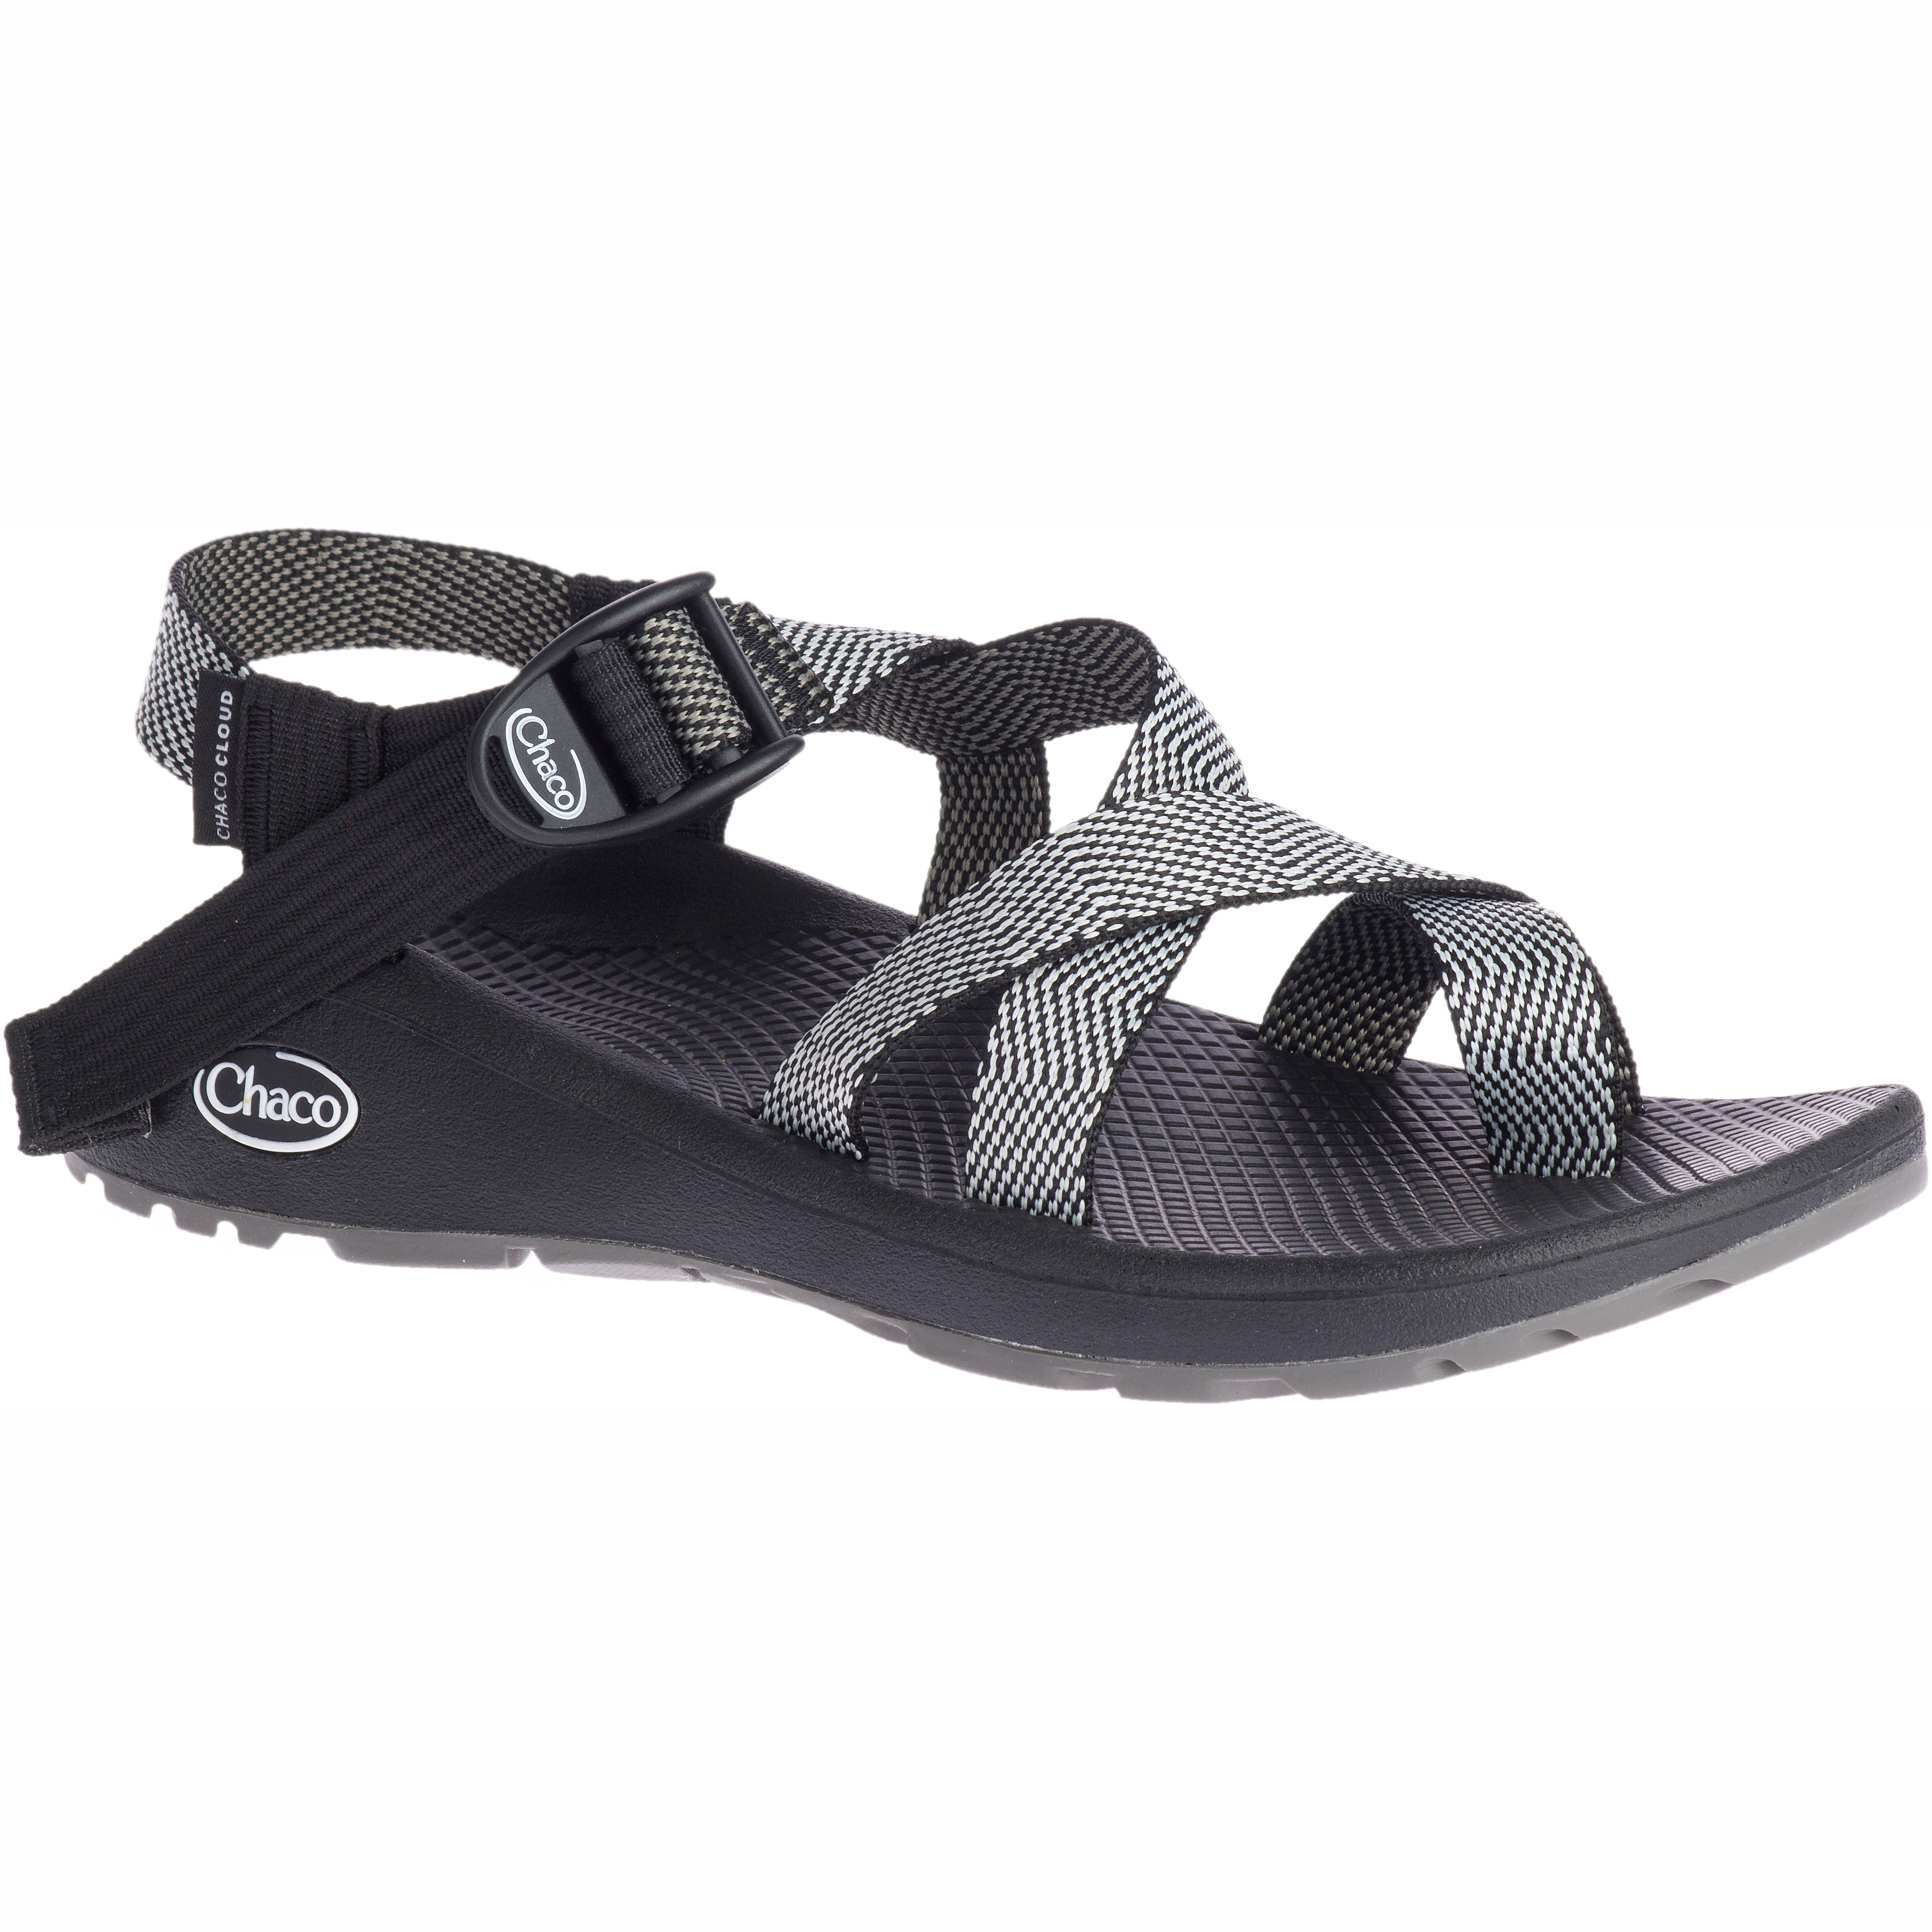 all black chacos